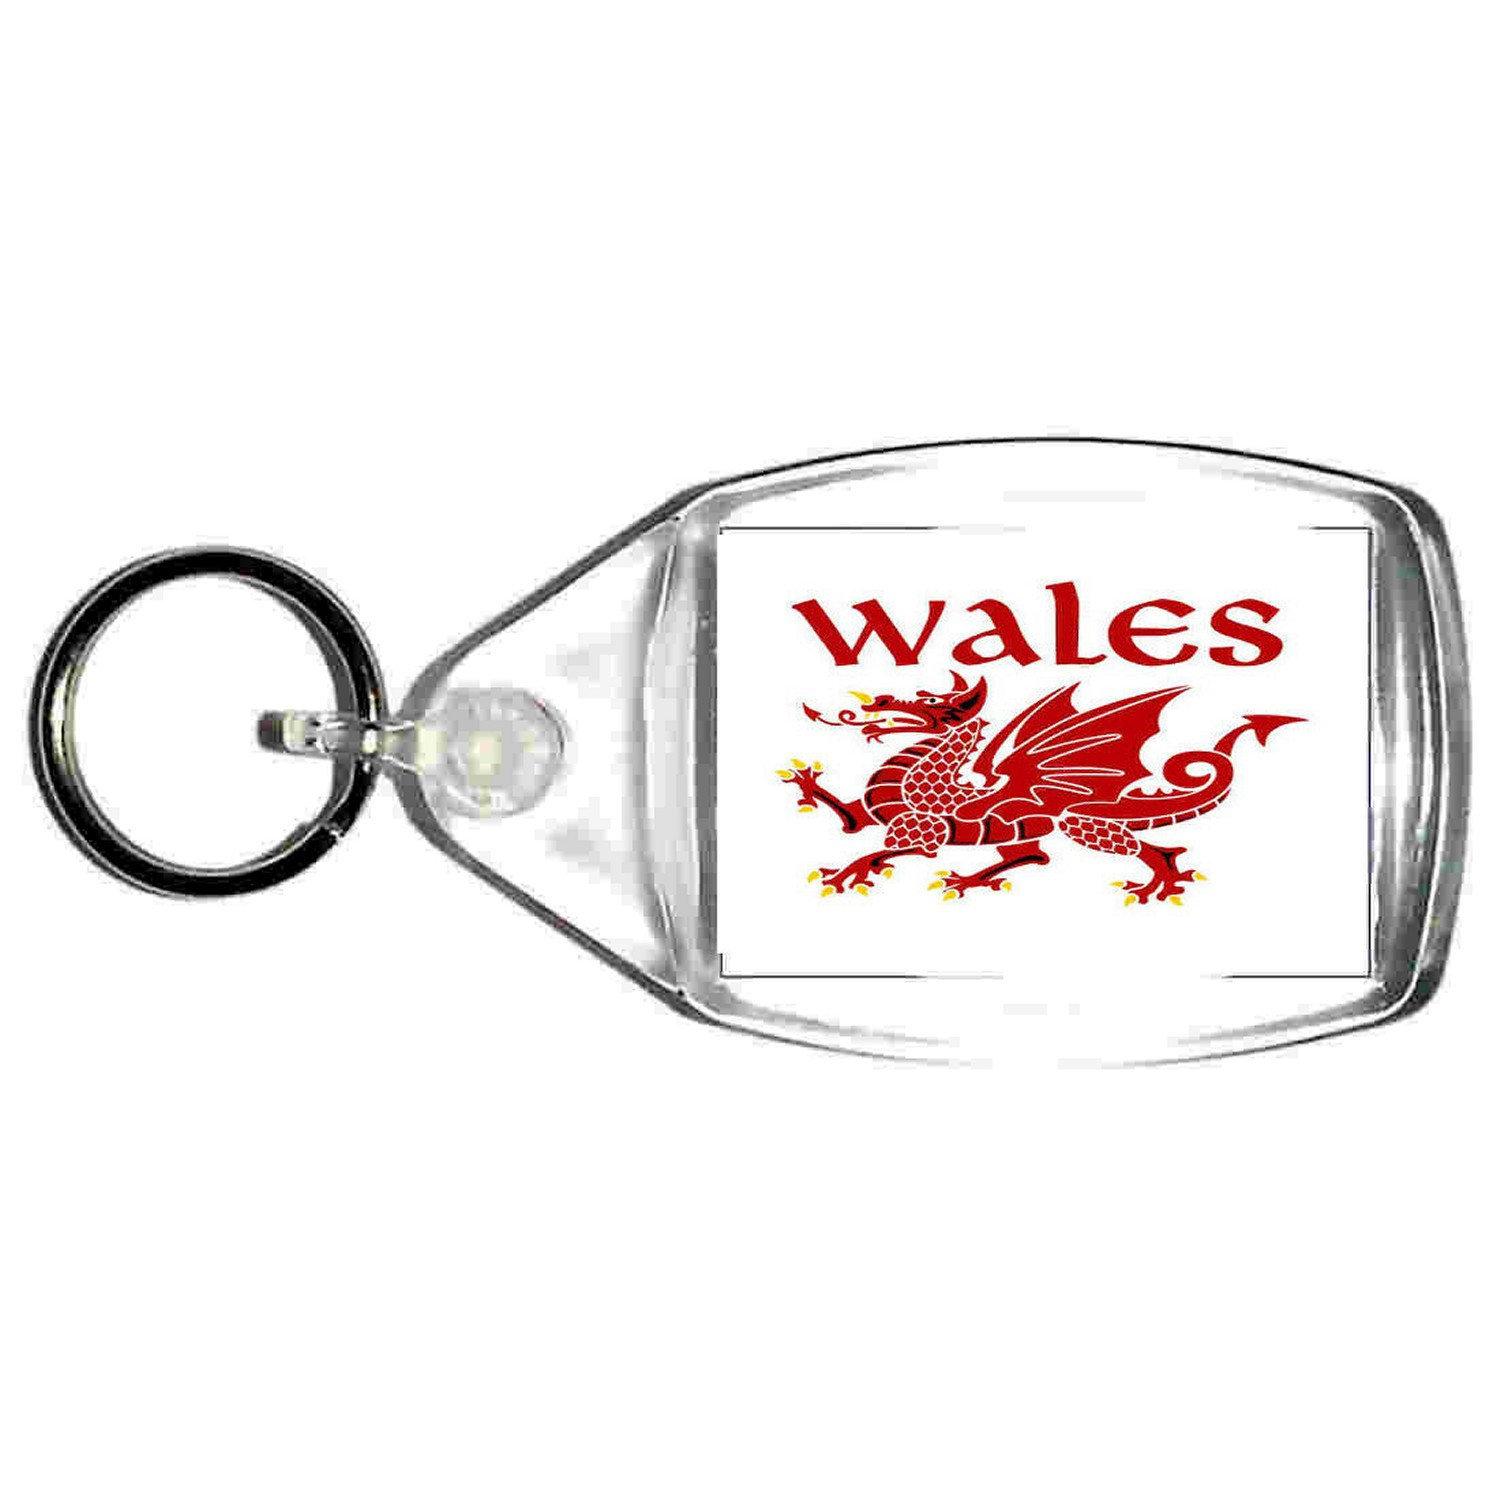 keyring double sided wales, welsh red dragon design, keychain